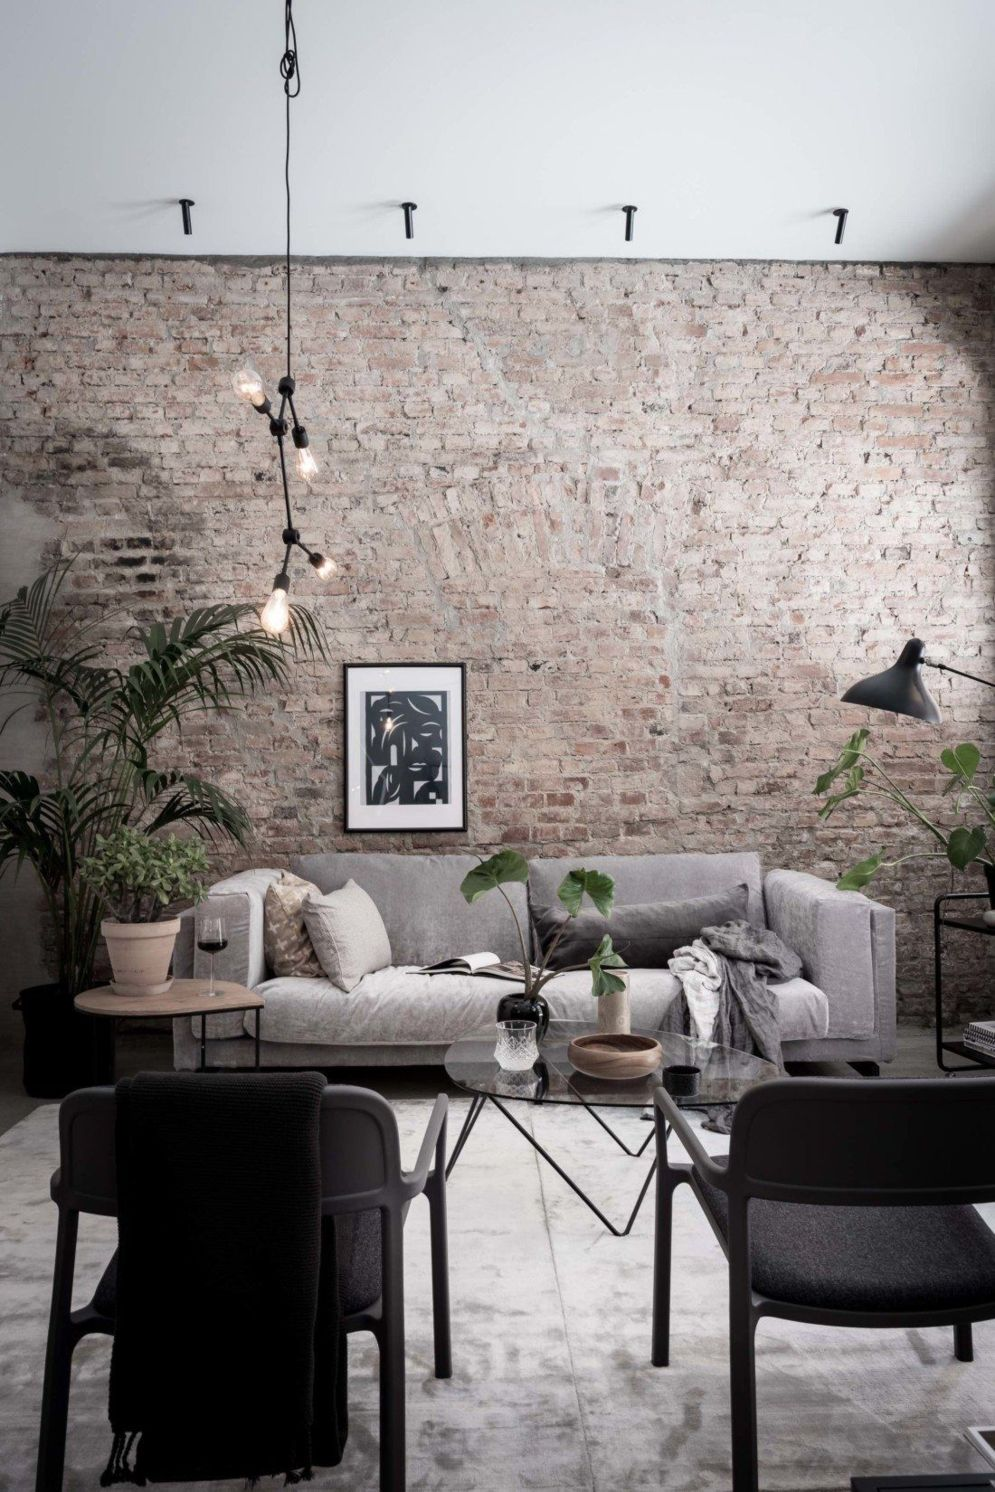 Wonderful interior statement brick wall improving interior display with modern rustic combination Image 39